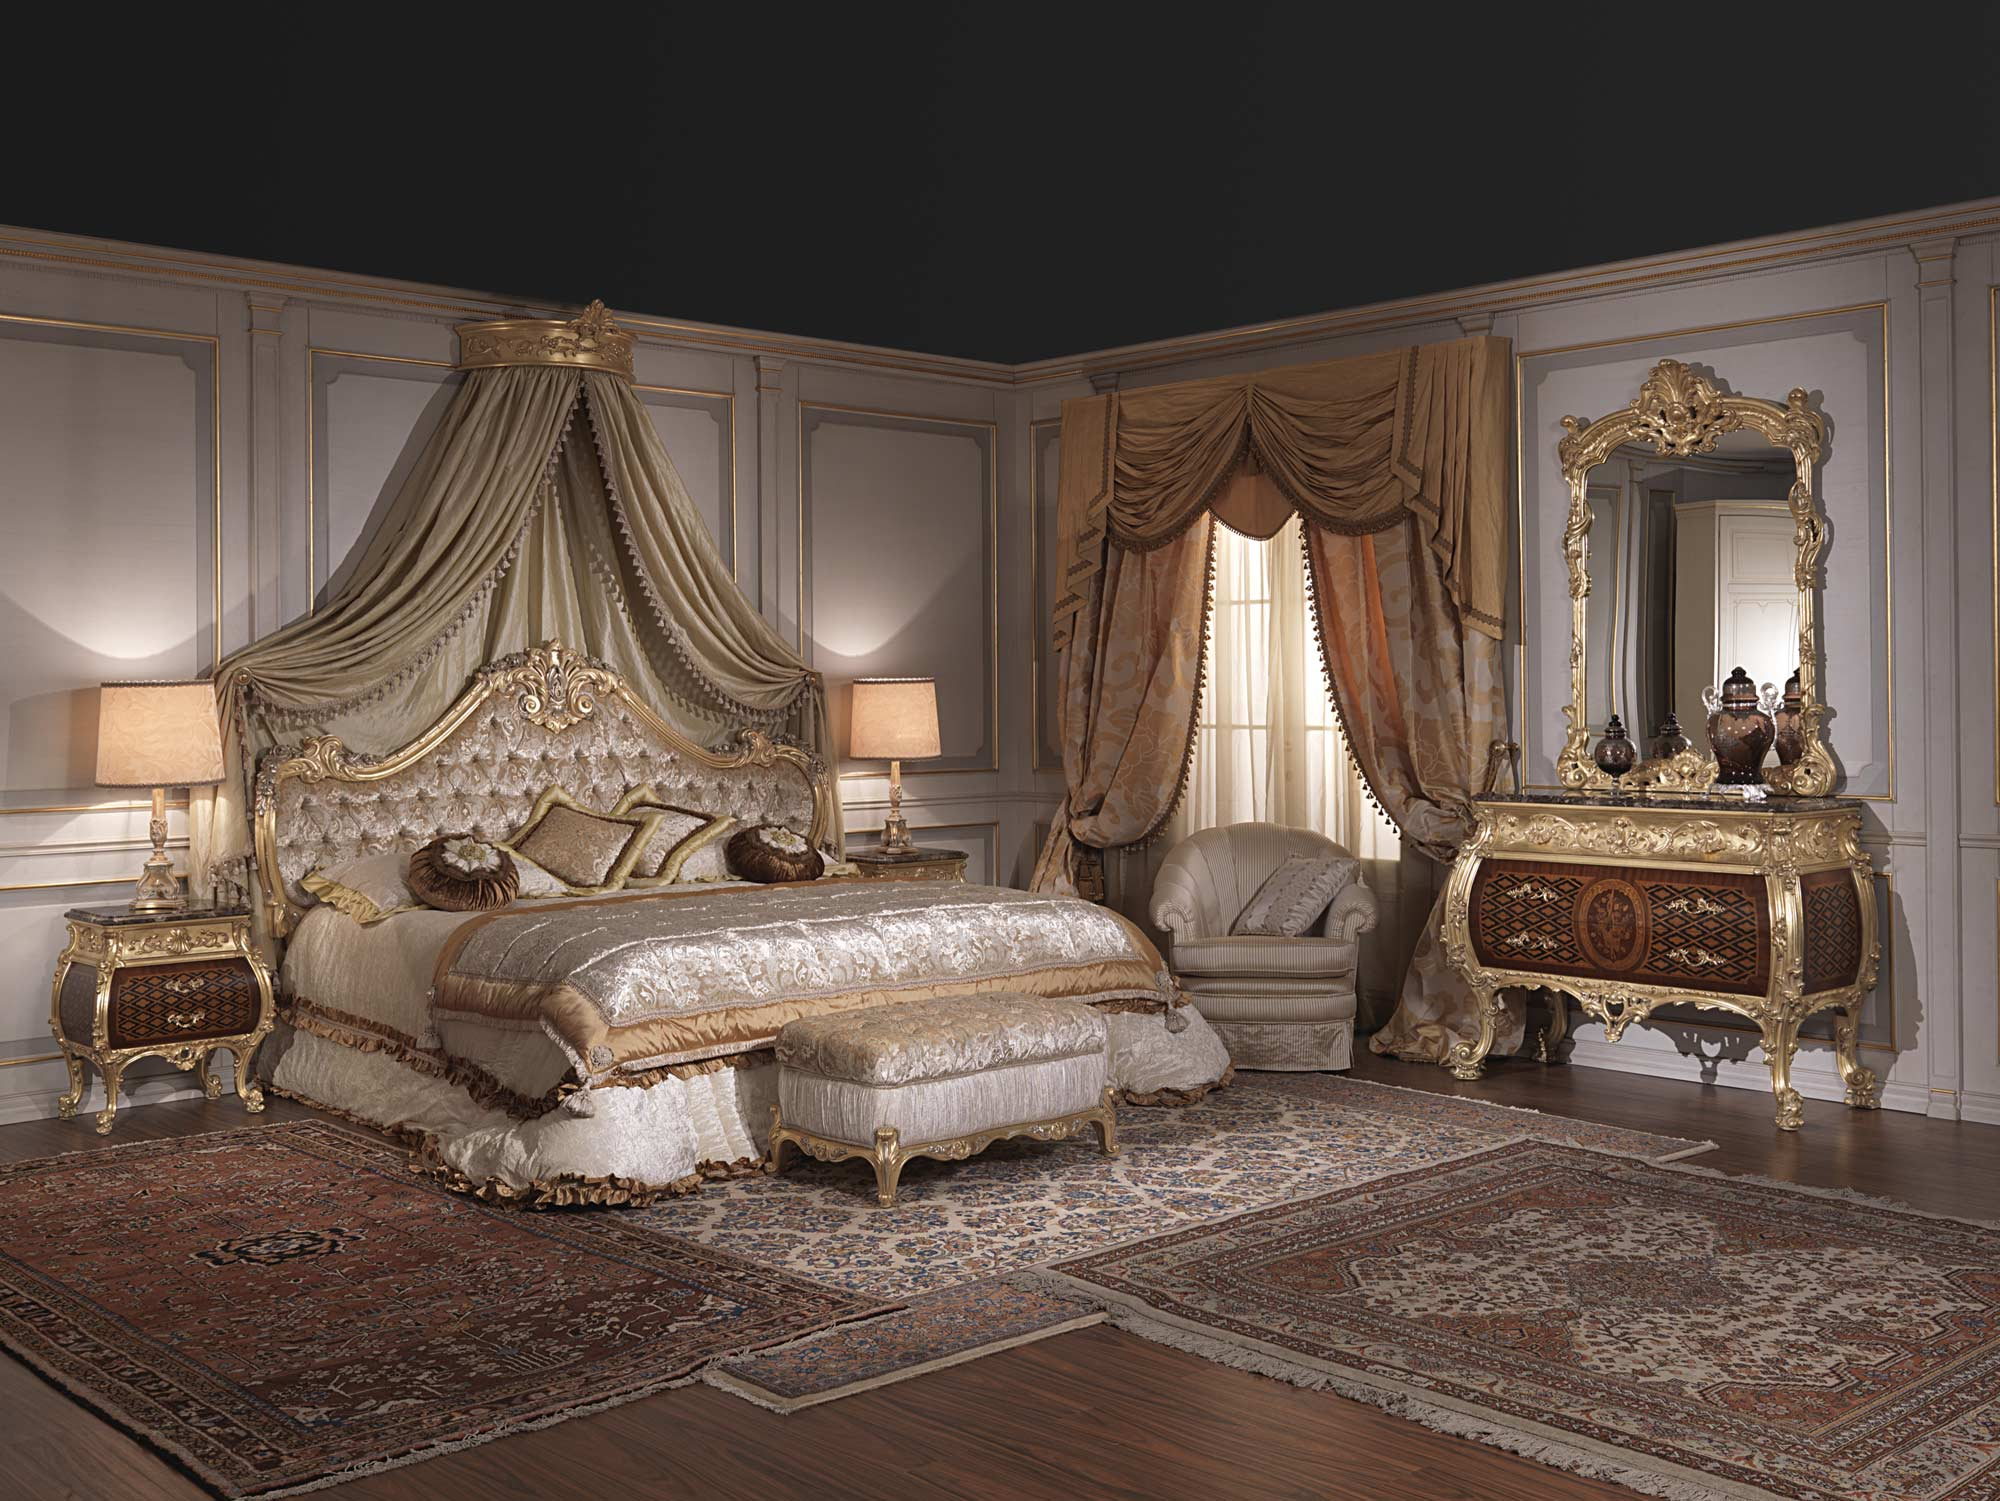 Furniture For Luxury Bedroom Emperador Gold Art 397 931